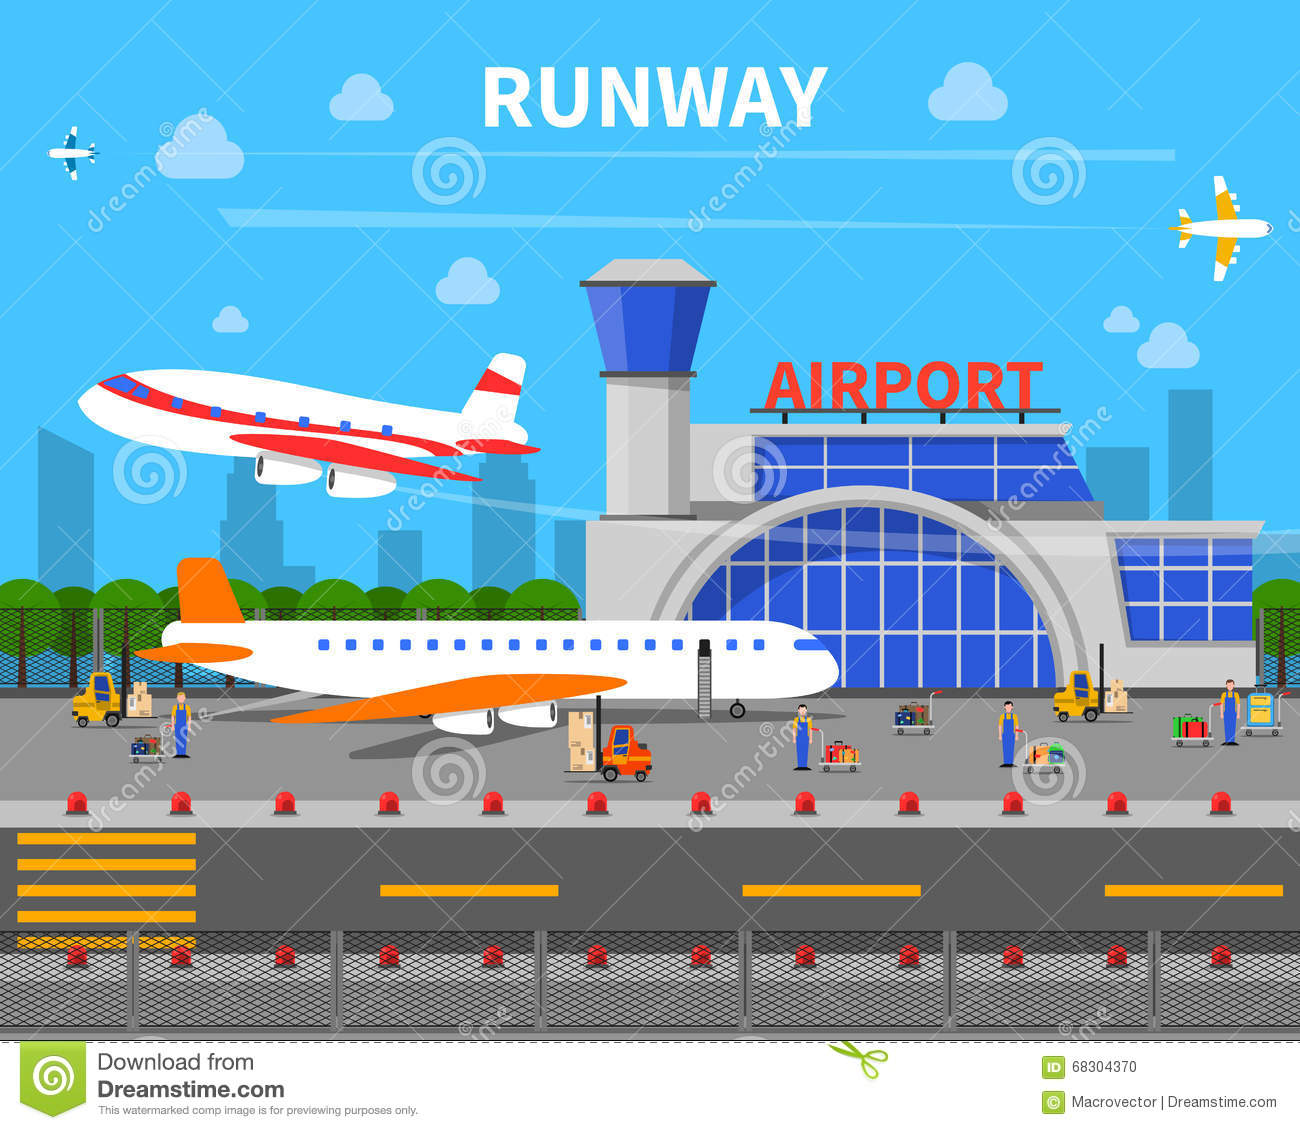 airport gate clipart - photo #33